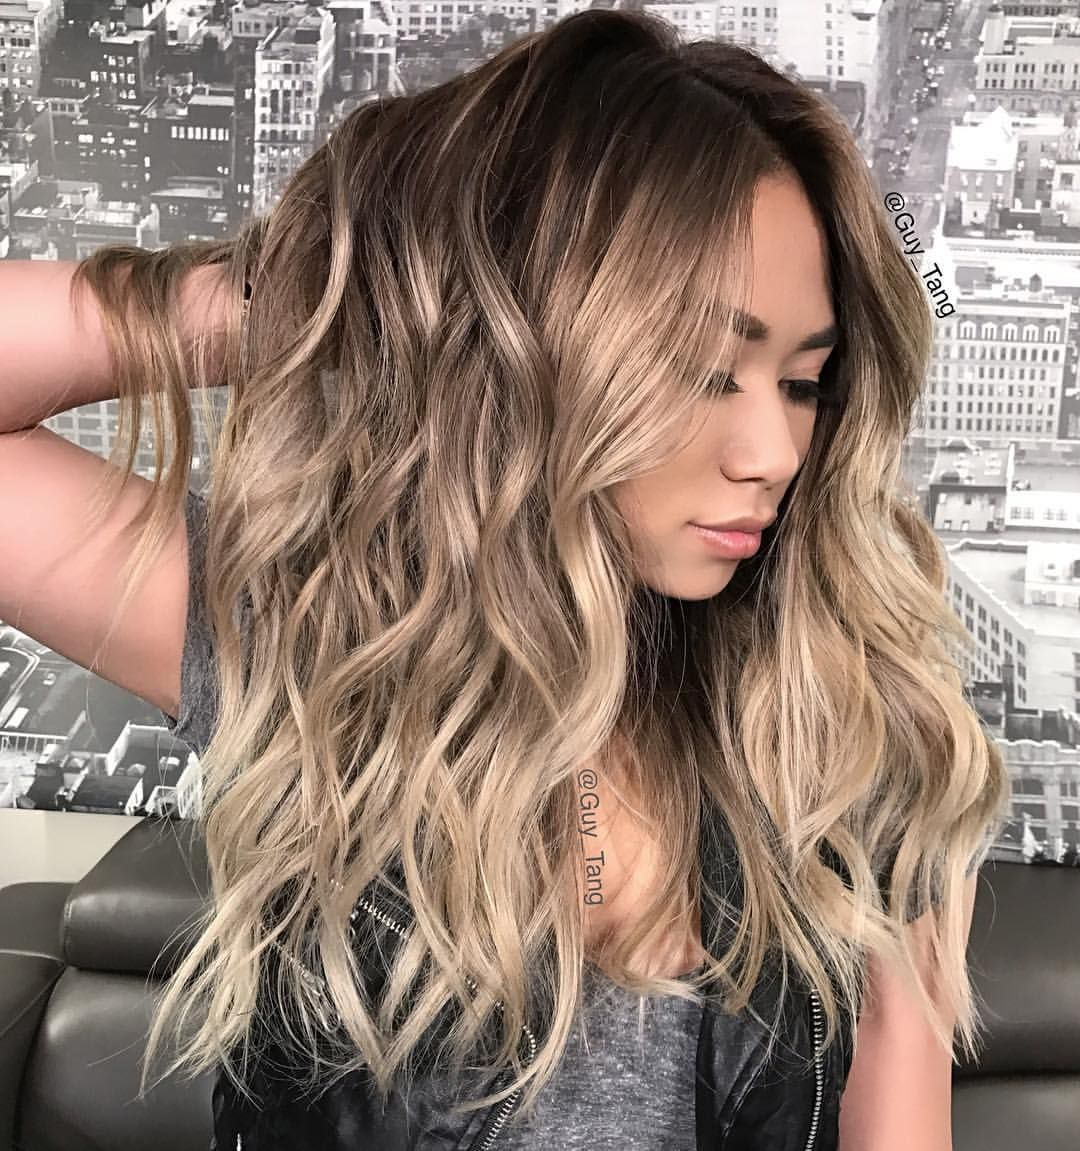 Guy Tang On Instagram Hairbesties I Gave Jessicaesanchez A